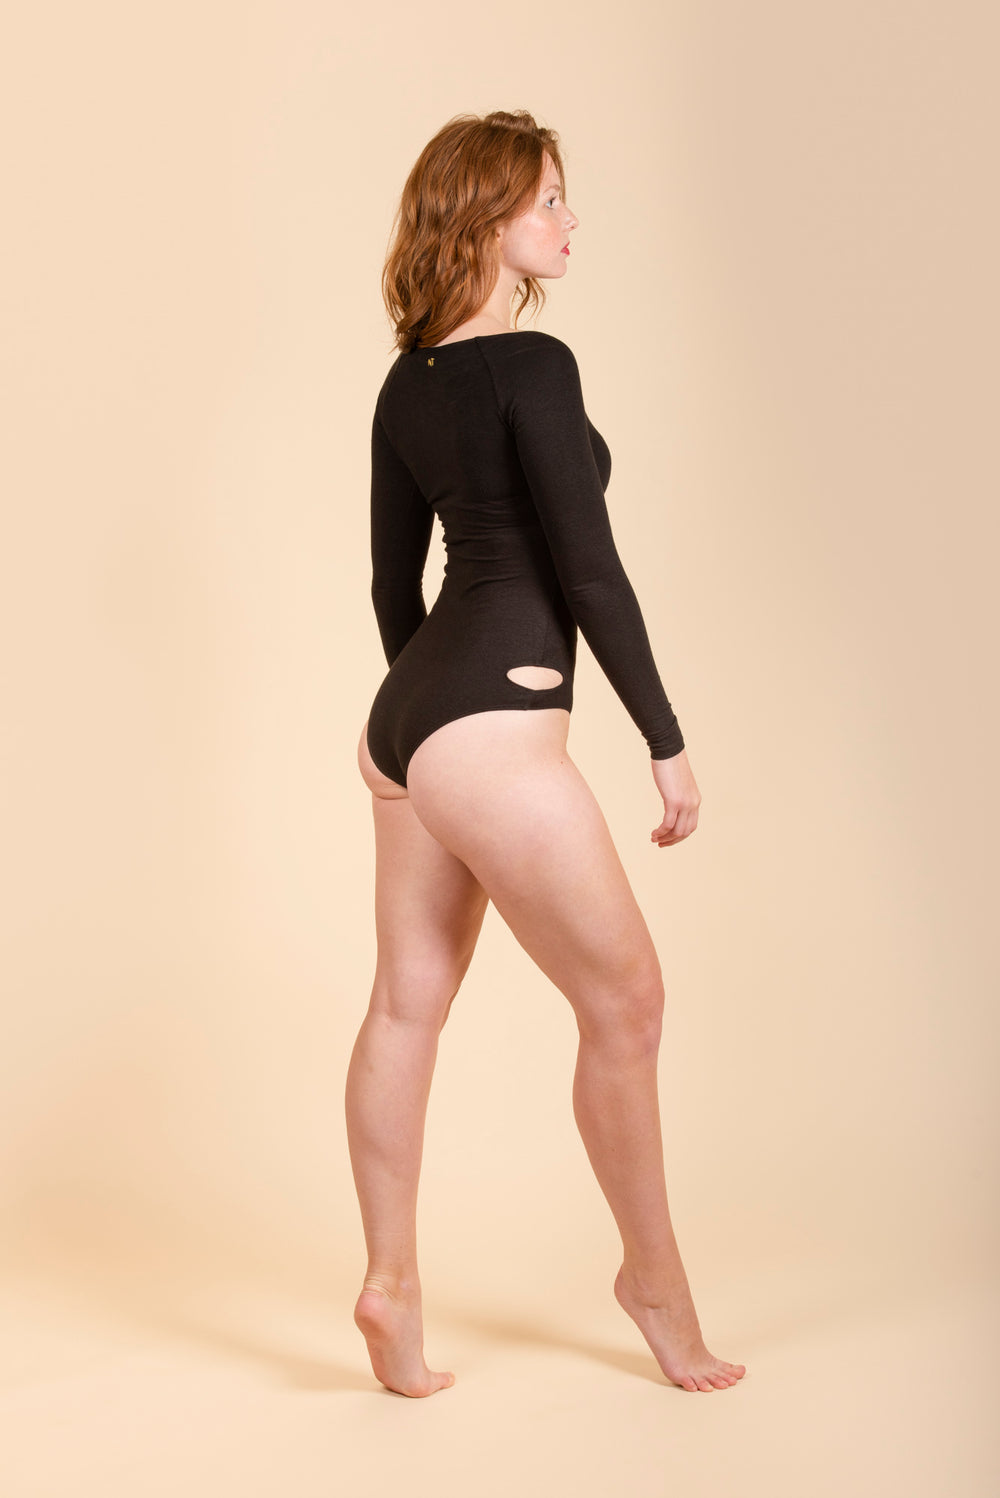 NATASHA TONIC Goddess Longsleeved Suit in Black